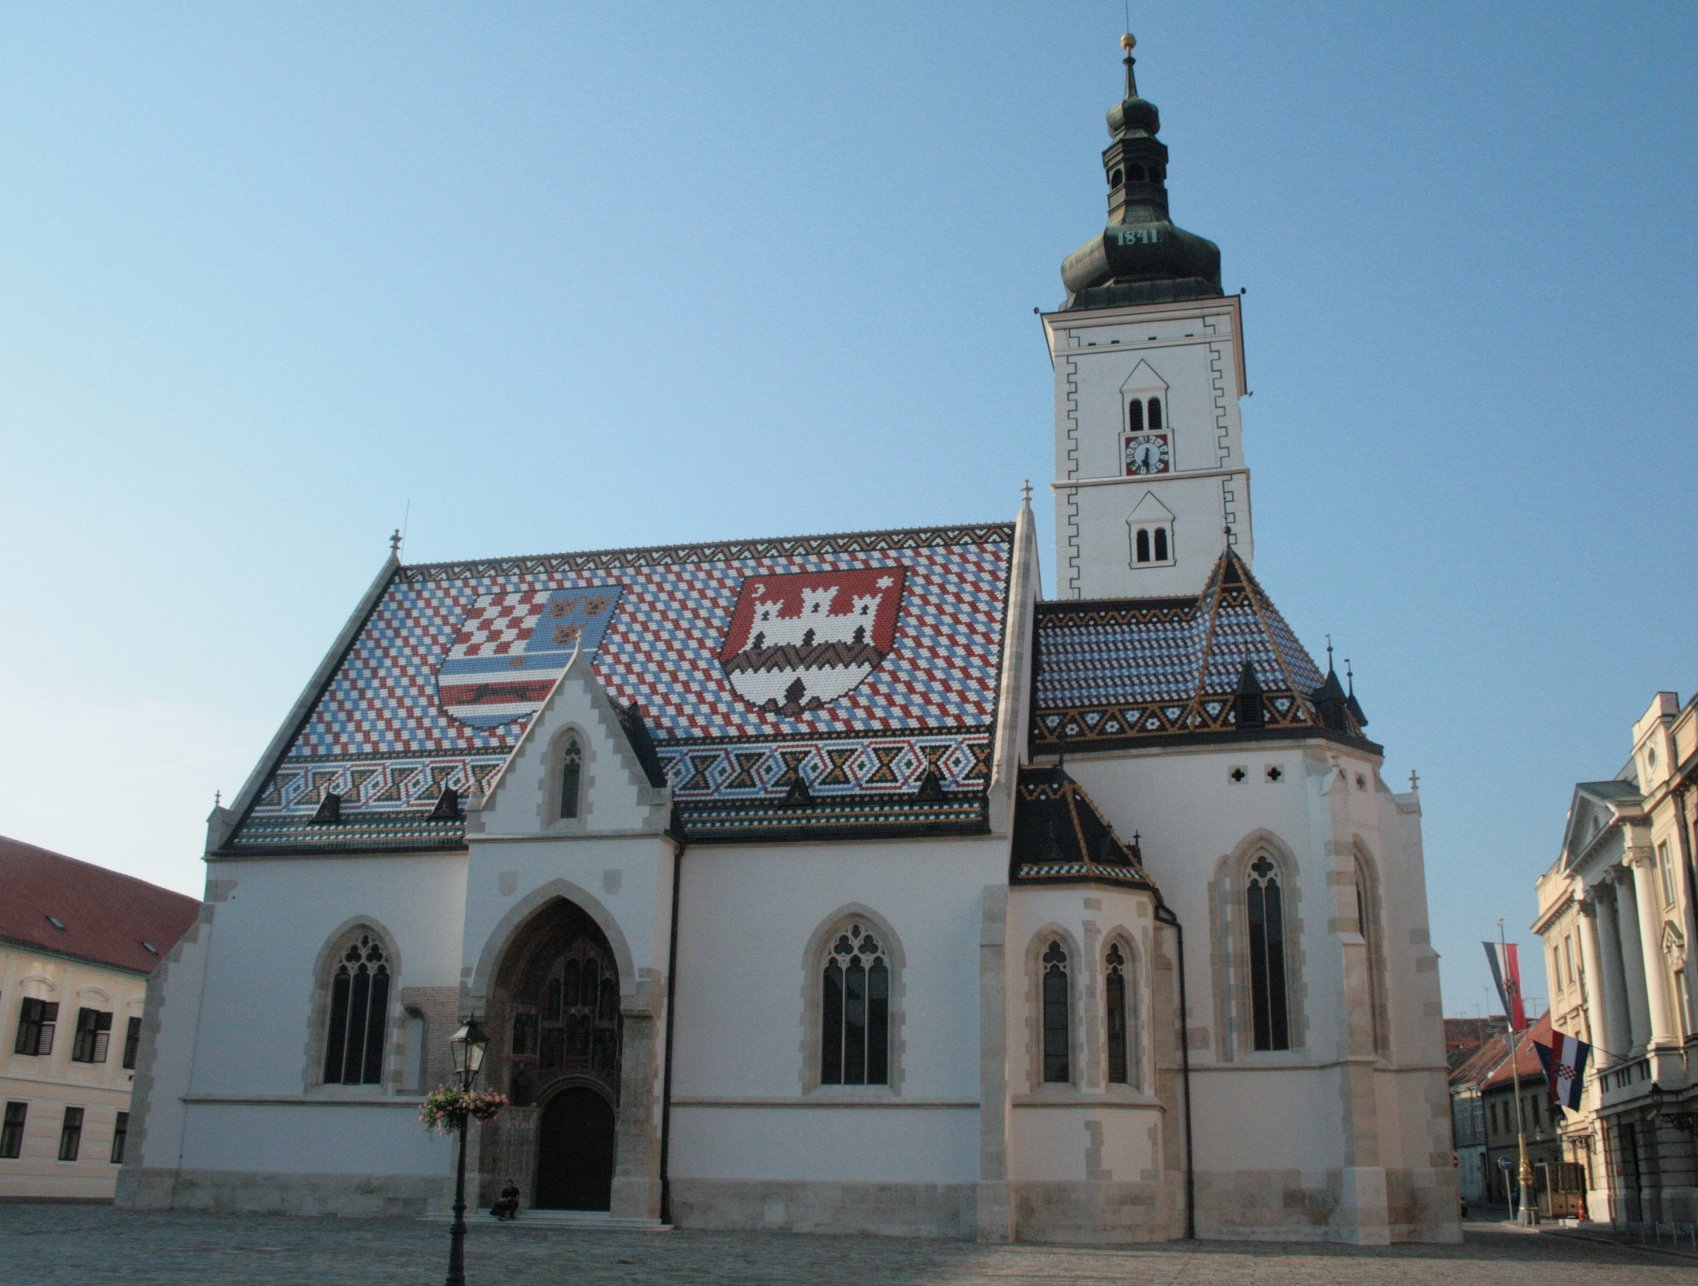 Sightseeing in Zagreb - St Mark's Church